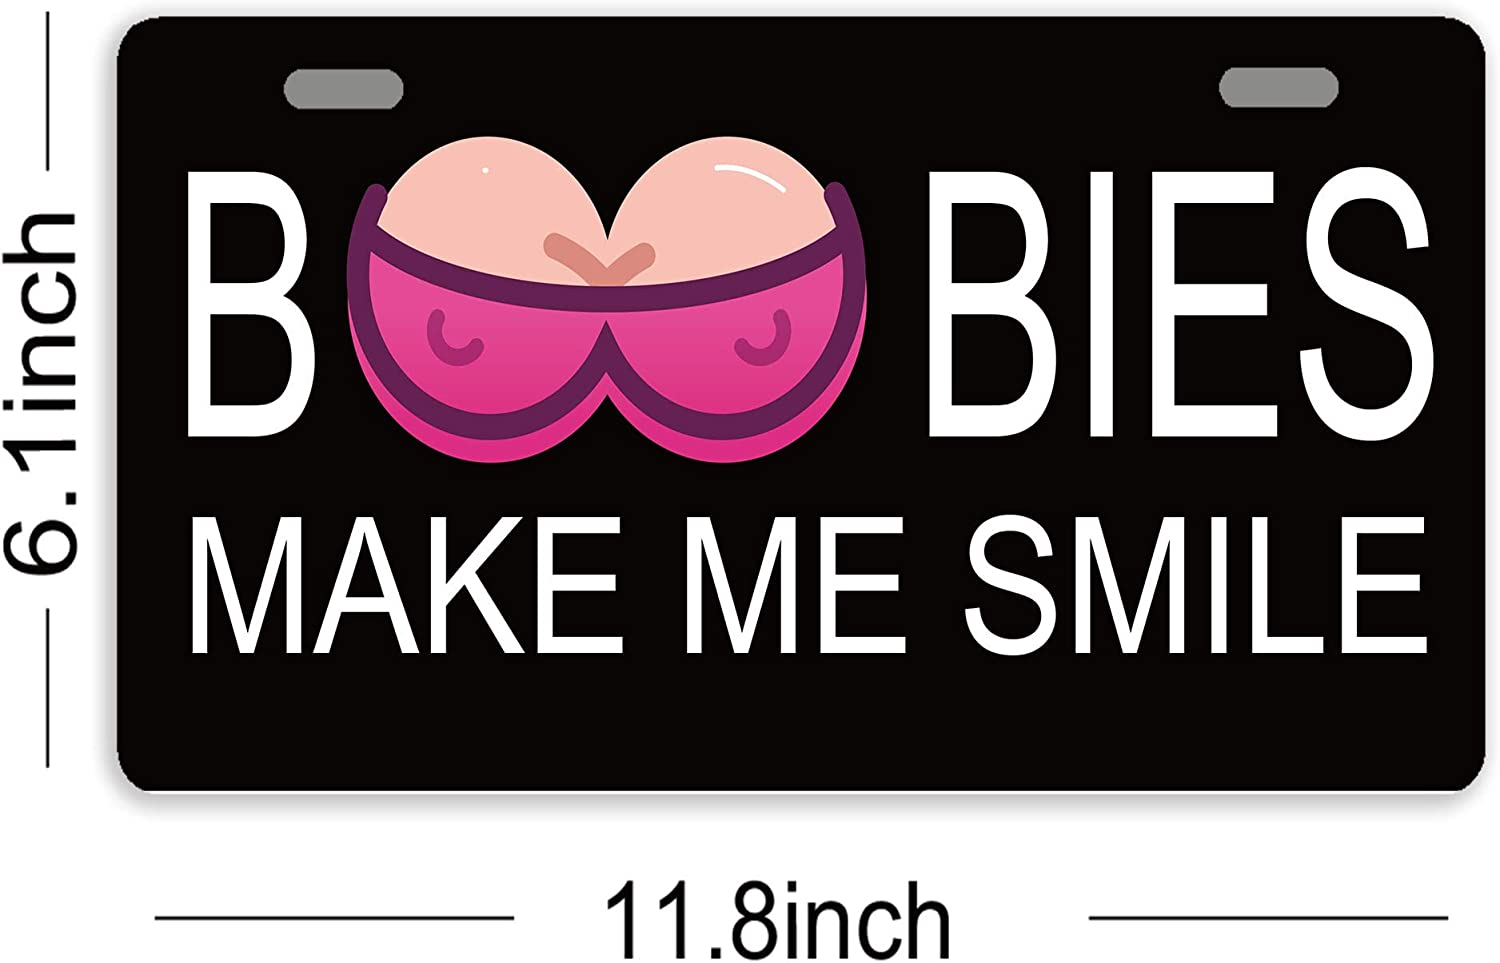 Boobies Make Me Smile Metal Novelty License Plate Tag